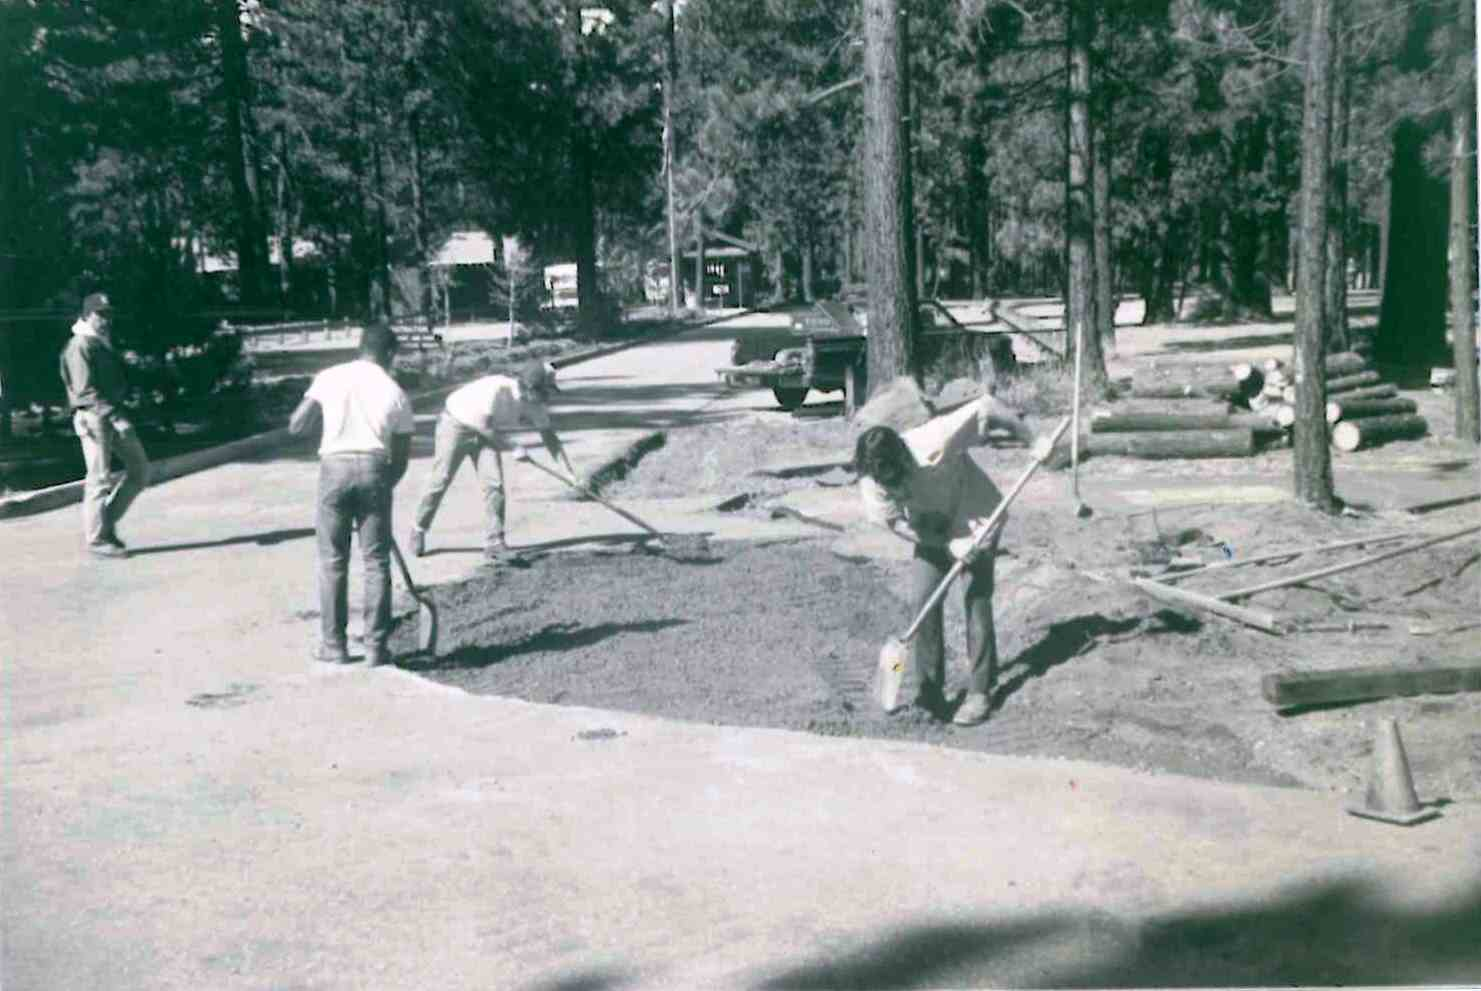 Men working on Campground by the Lake 1981